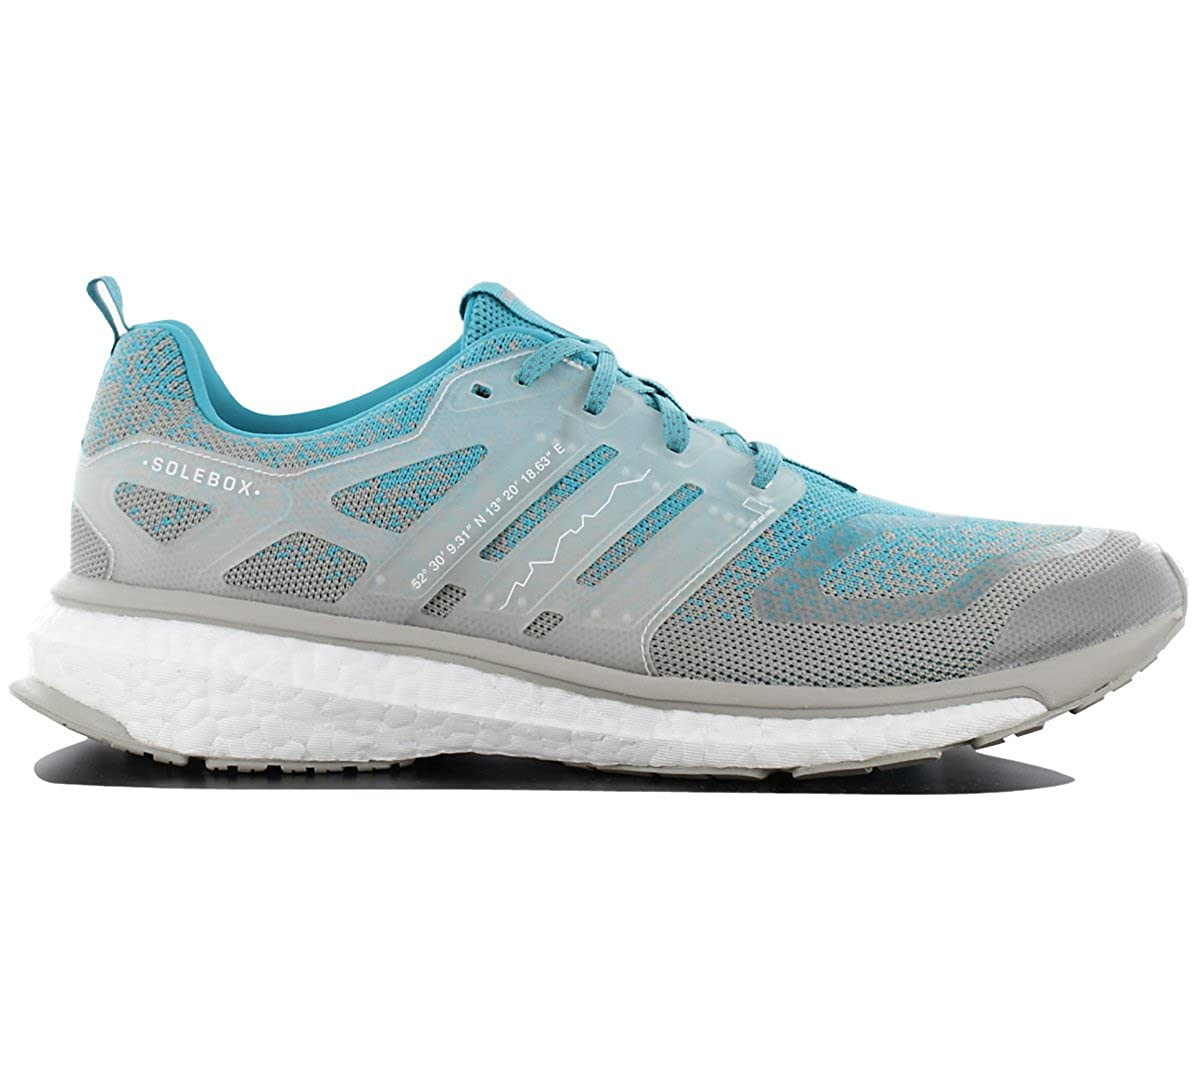 save off 46894 55525 Amazon.com  adidas - Consortium Energy Boost Mid SE X Packer Shoes Solebox  - CP9762 - Color Turquoise-Grey - Size 9.5  Fashion Sneakers